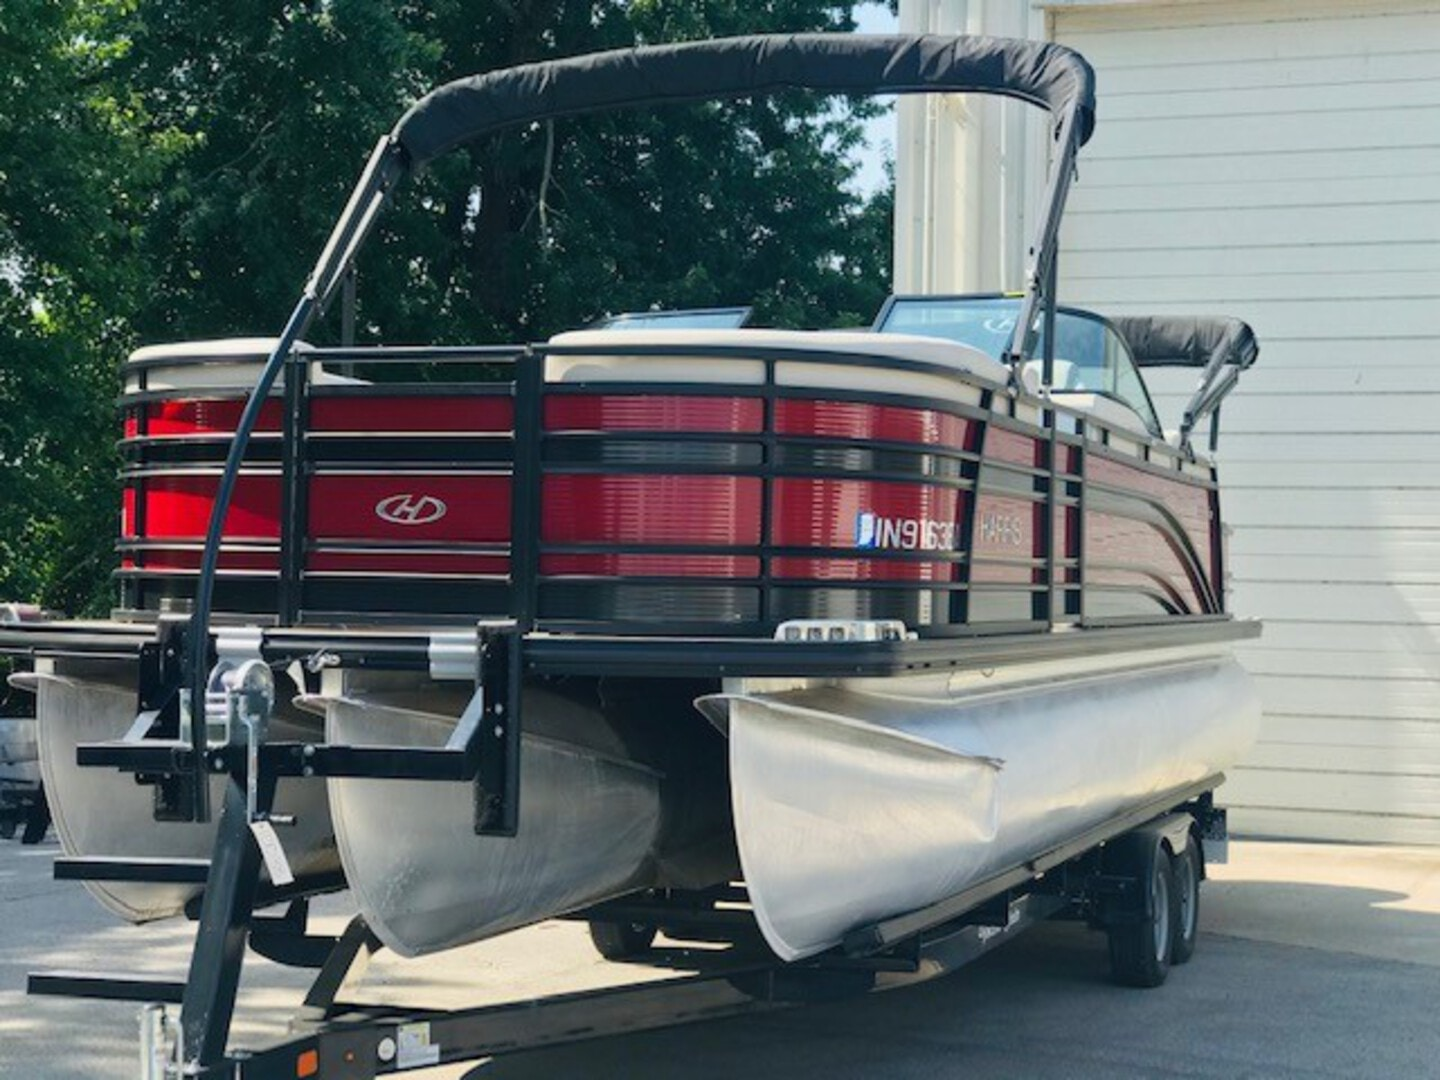 Used, 2018, Harris Flotebote, SOLSTICE 250 DUAL HELM SL  DHSL, Boats